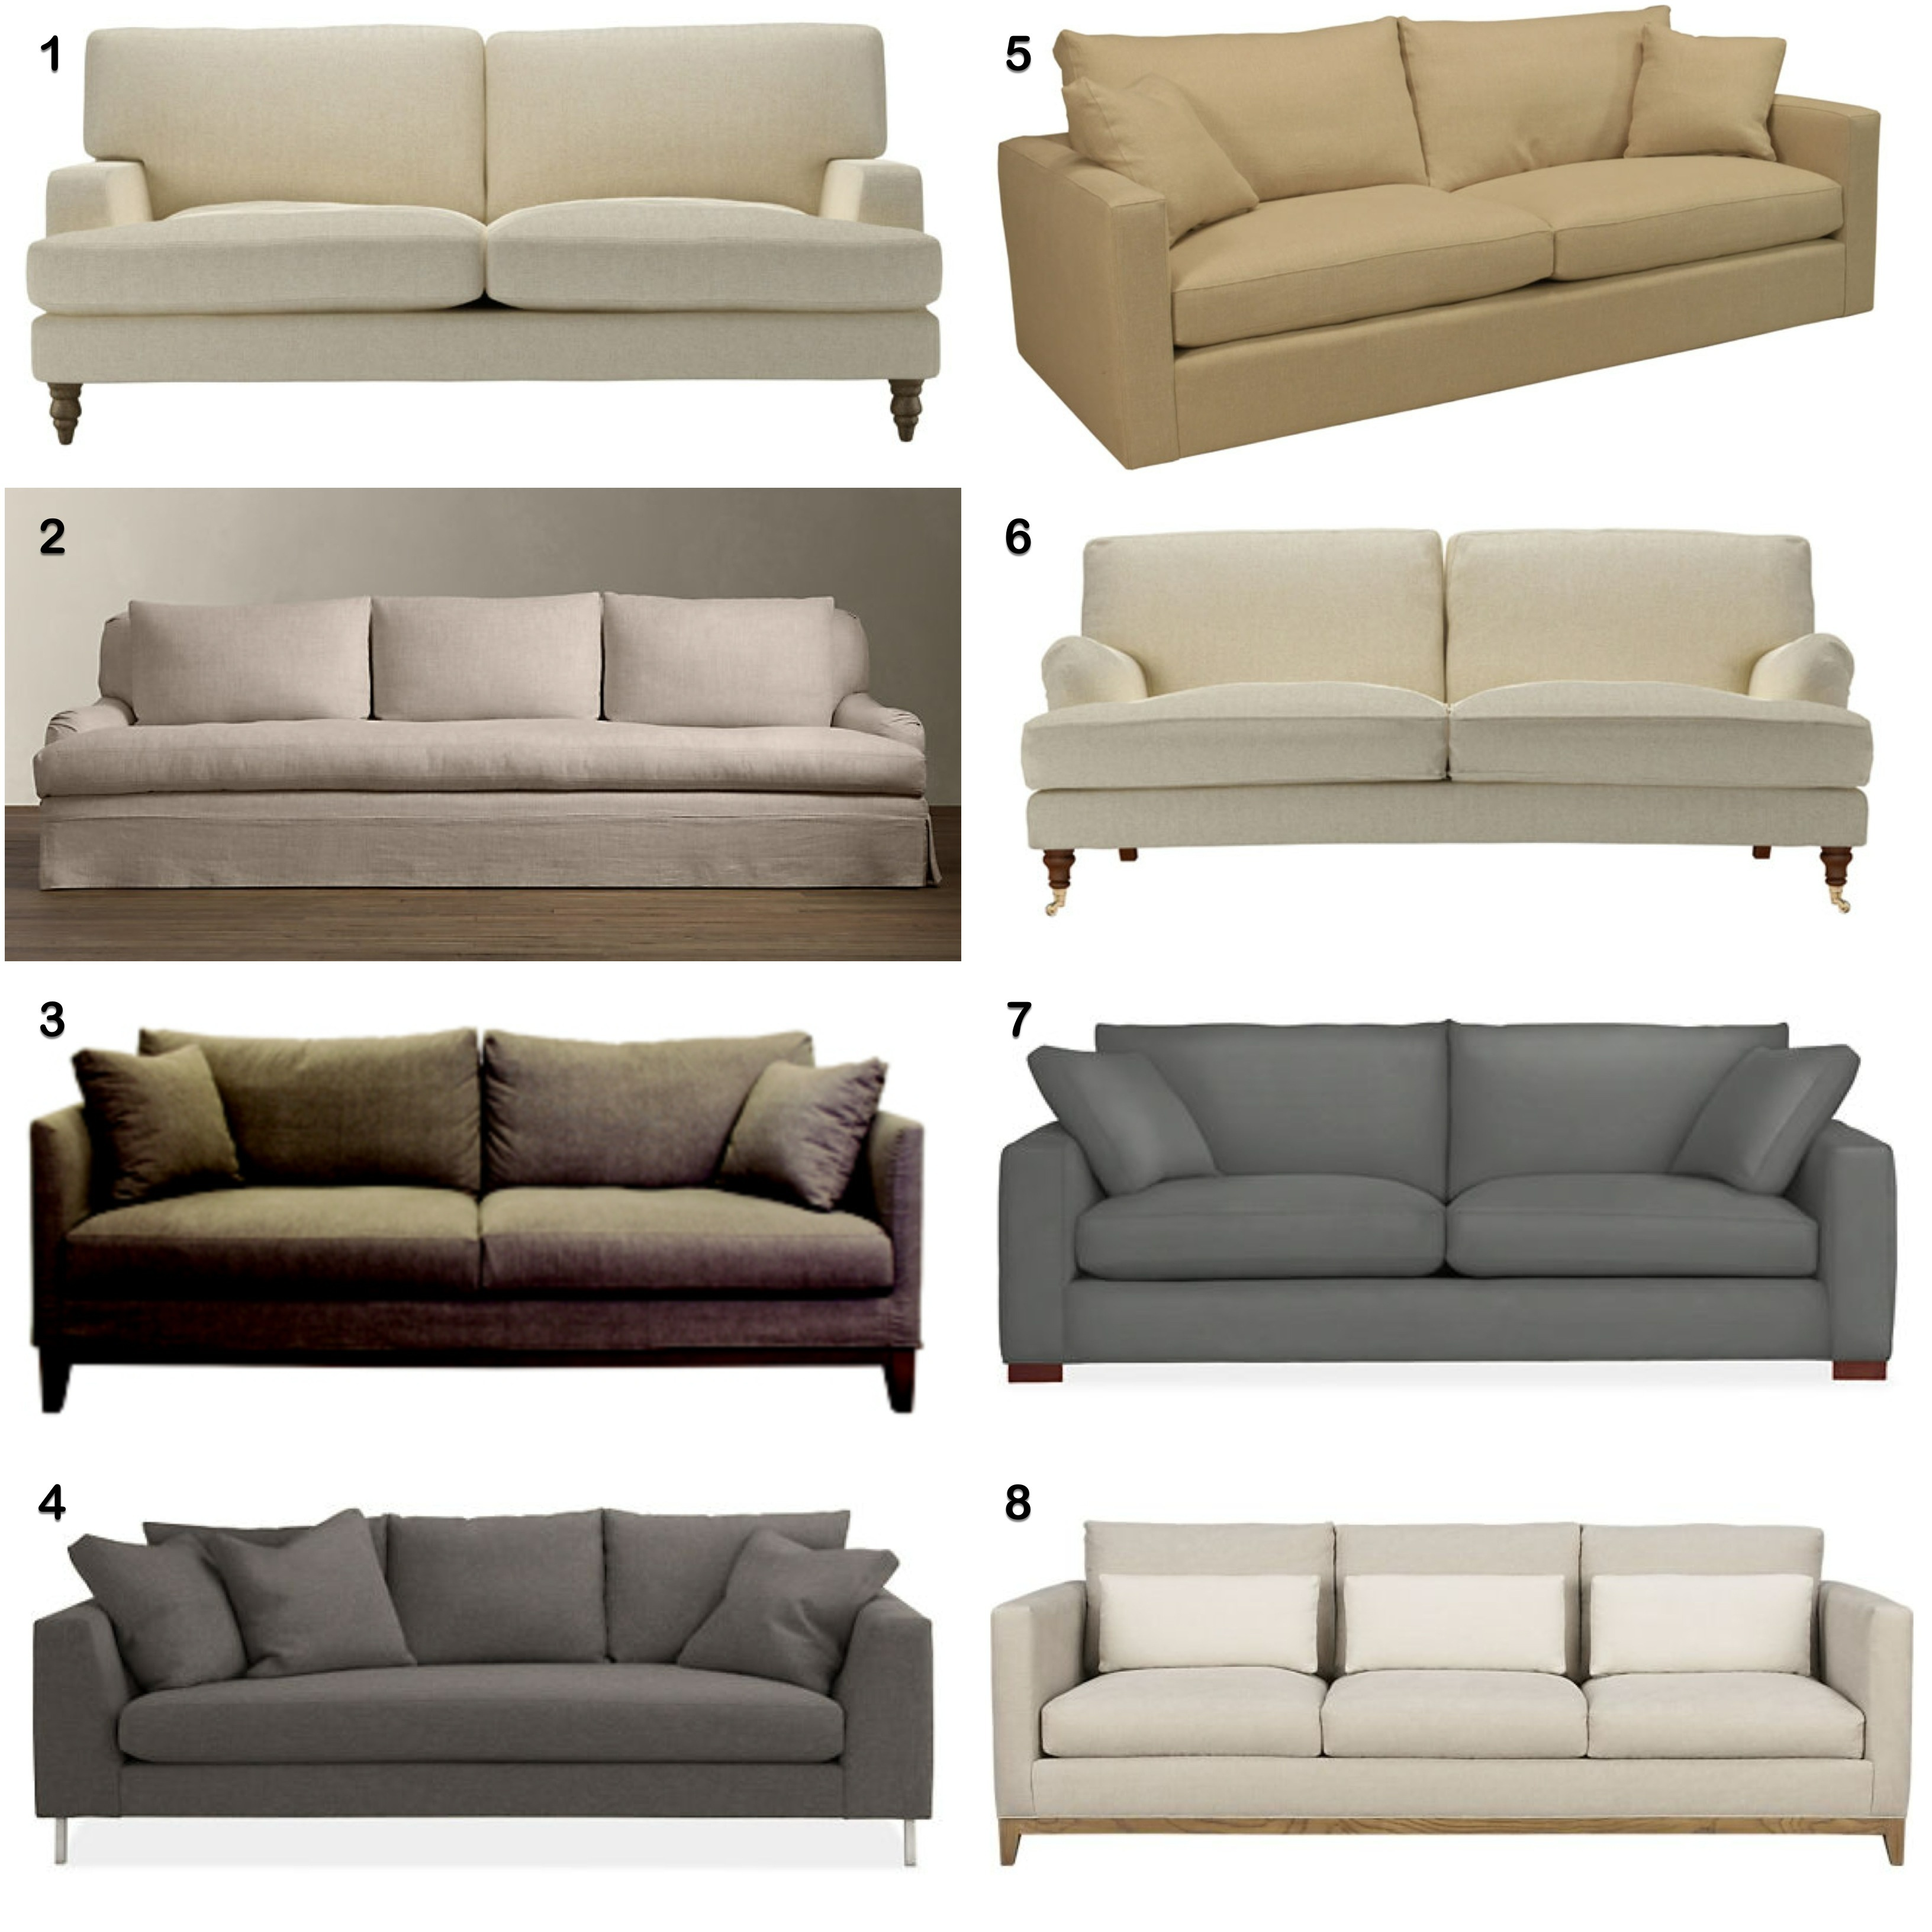 sofa com nyc mattress for camper bed comfy couches on a budget my strange family